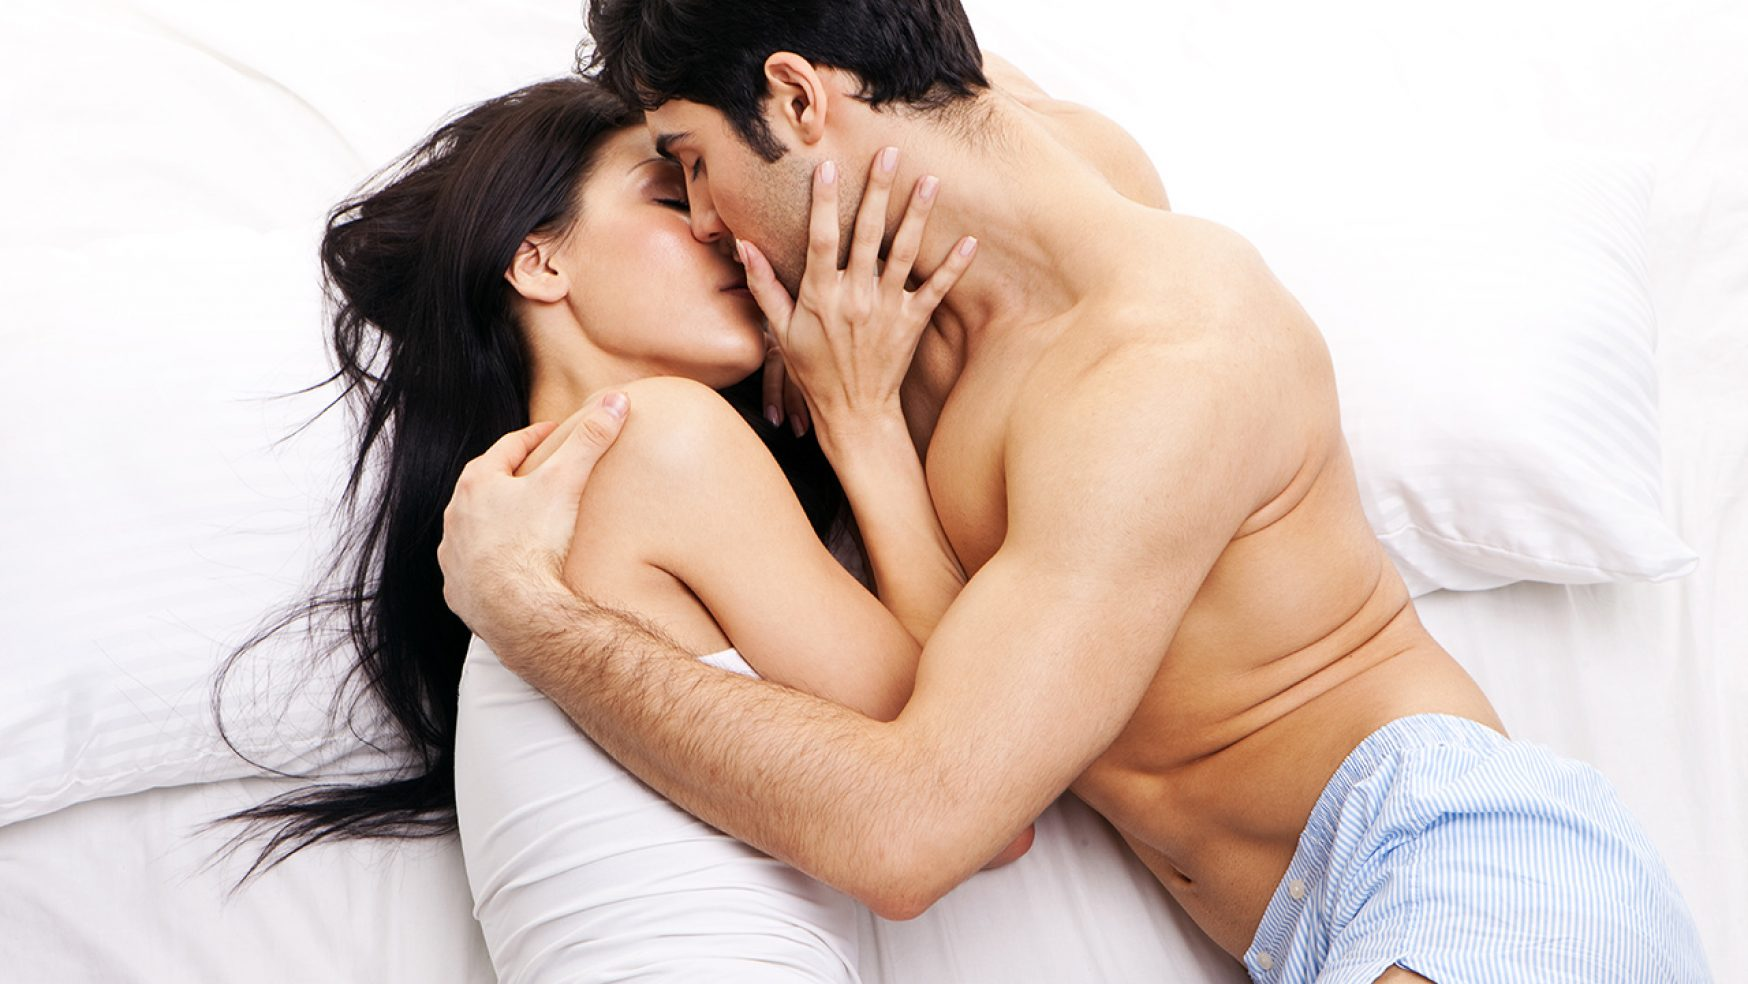 How does an erection occur and what happens when one has erectile dysfunction or impotence?